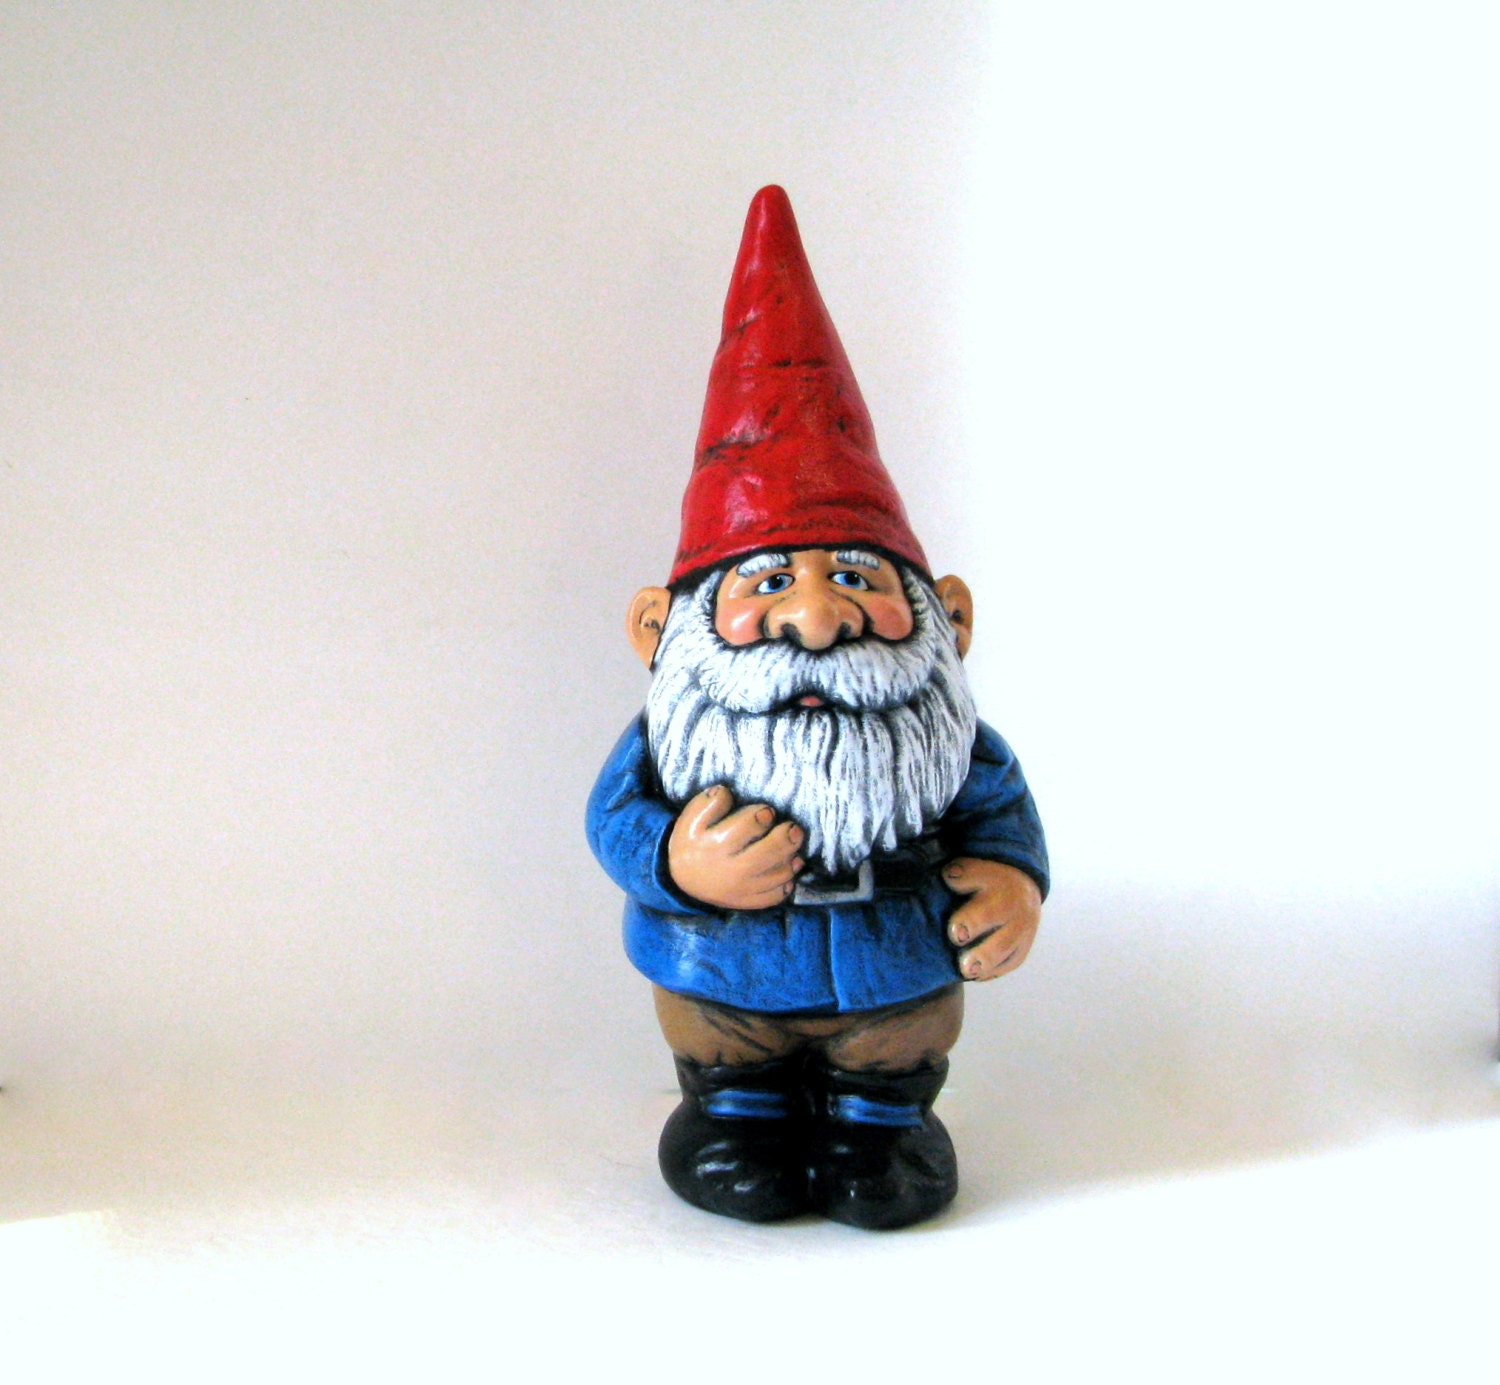 Ceramic Gnomes To Paint: Ceramic Garden Gnome 14 Inches Hand Painted Lawn Or Garden